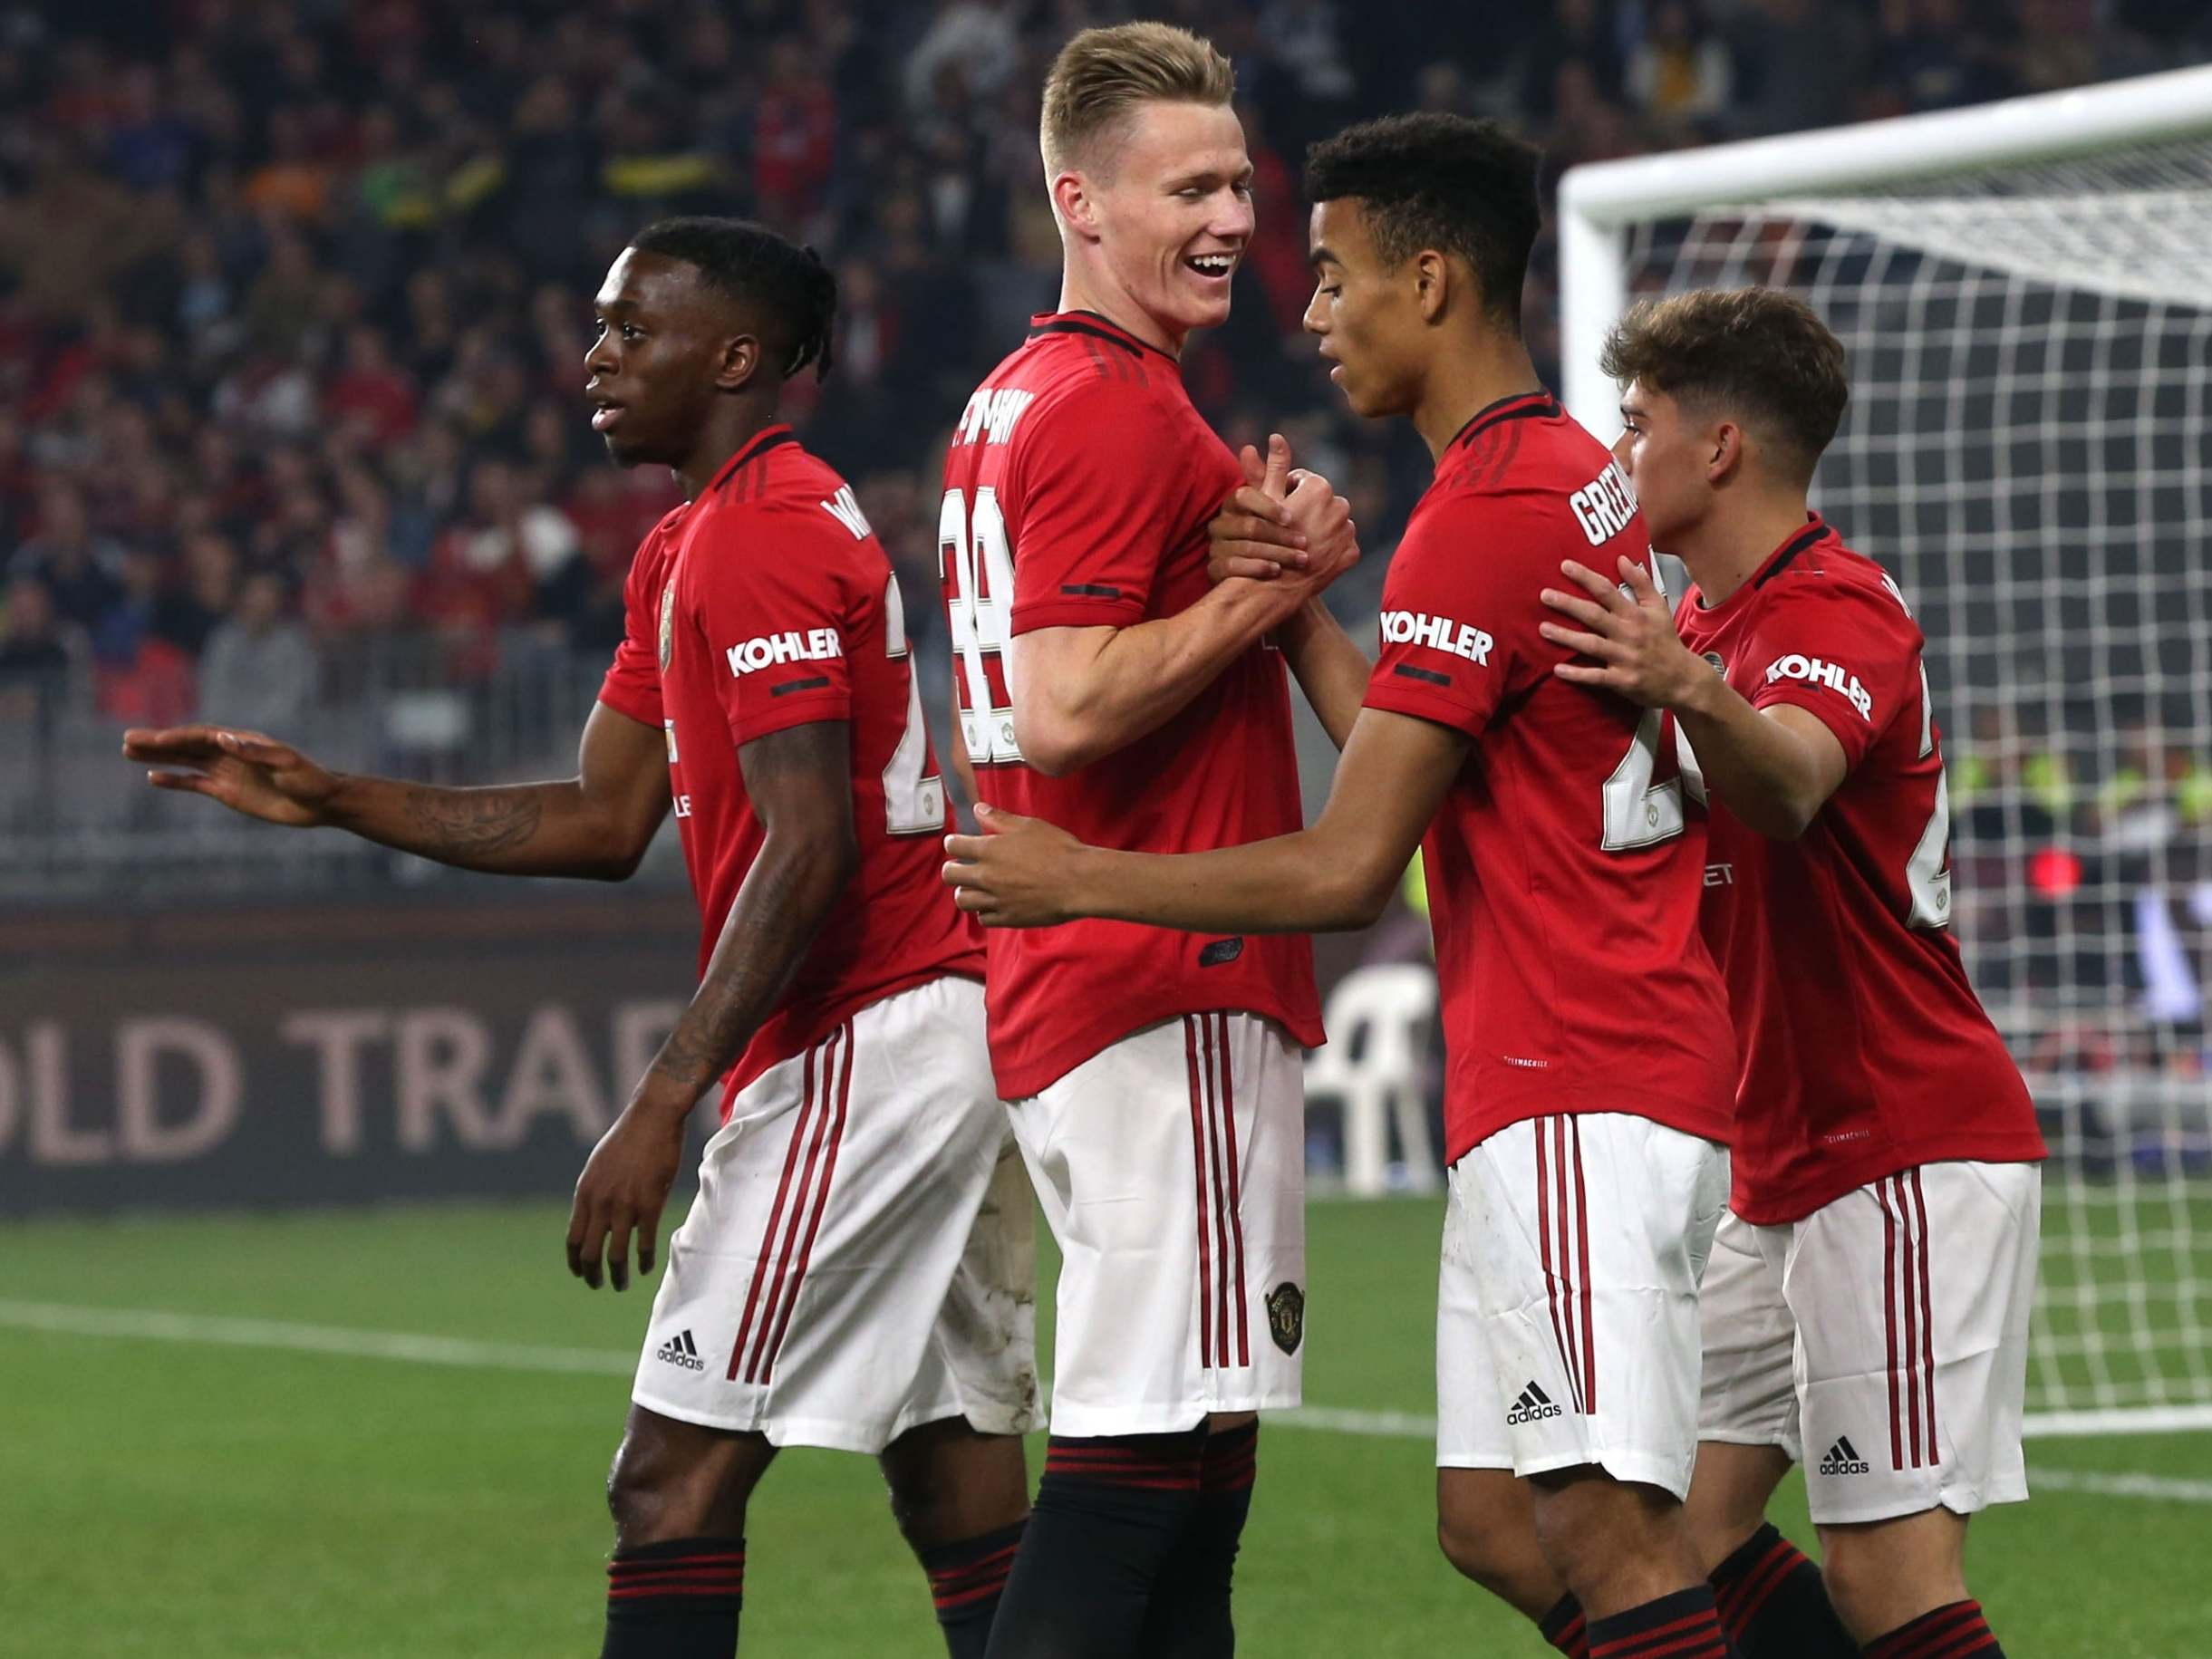 Manchester United vs Leeds result: Mason Greenwood and Marcus Rashford on target in pre-season friendly